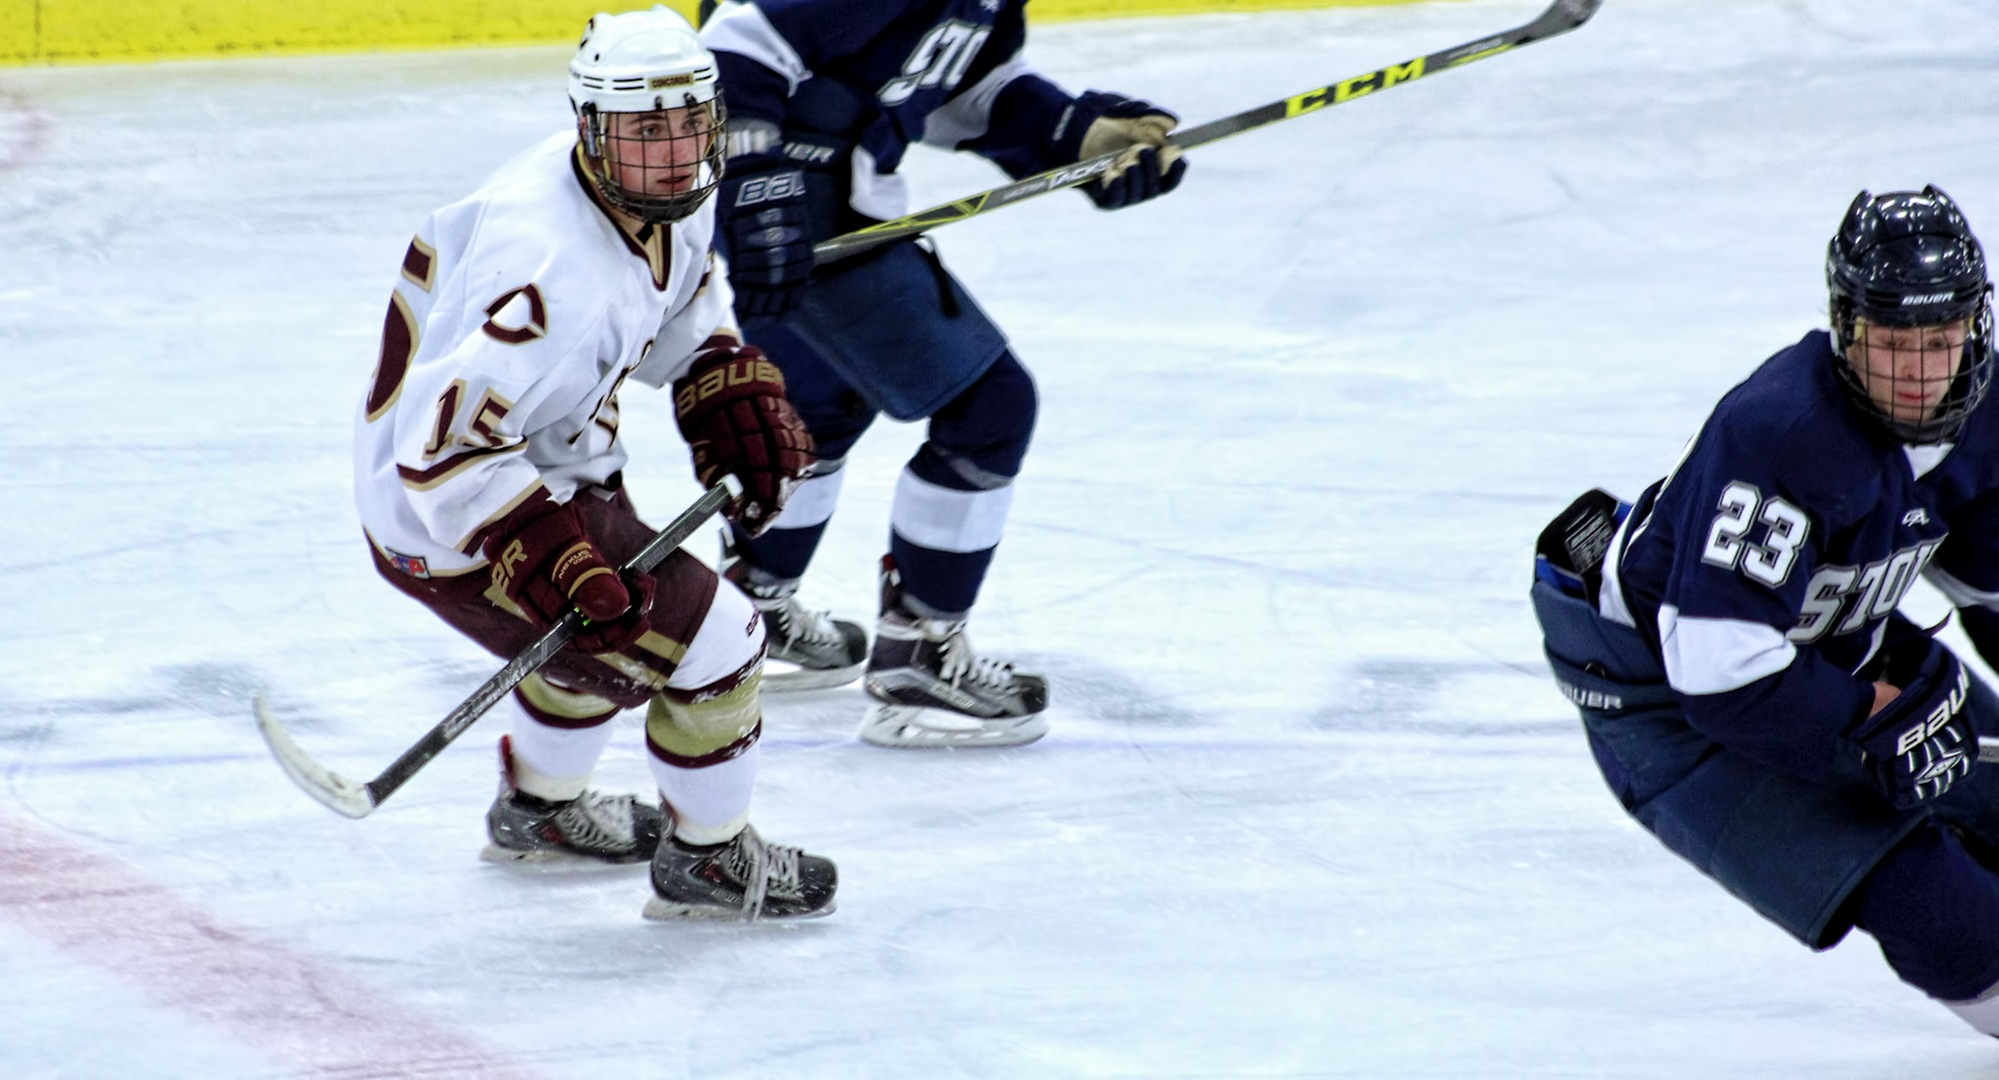 Junior Mario Bianchi scored the game-winning goal in the Cobbers' 3-2 victory at Wis.-Stout.